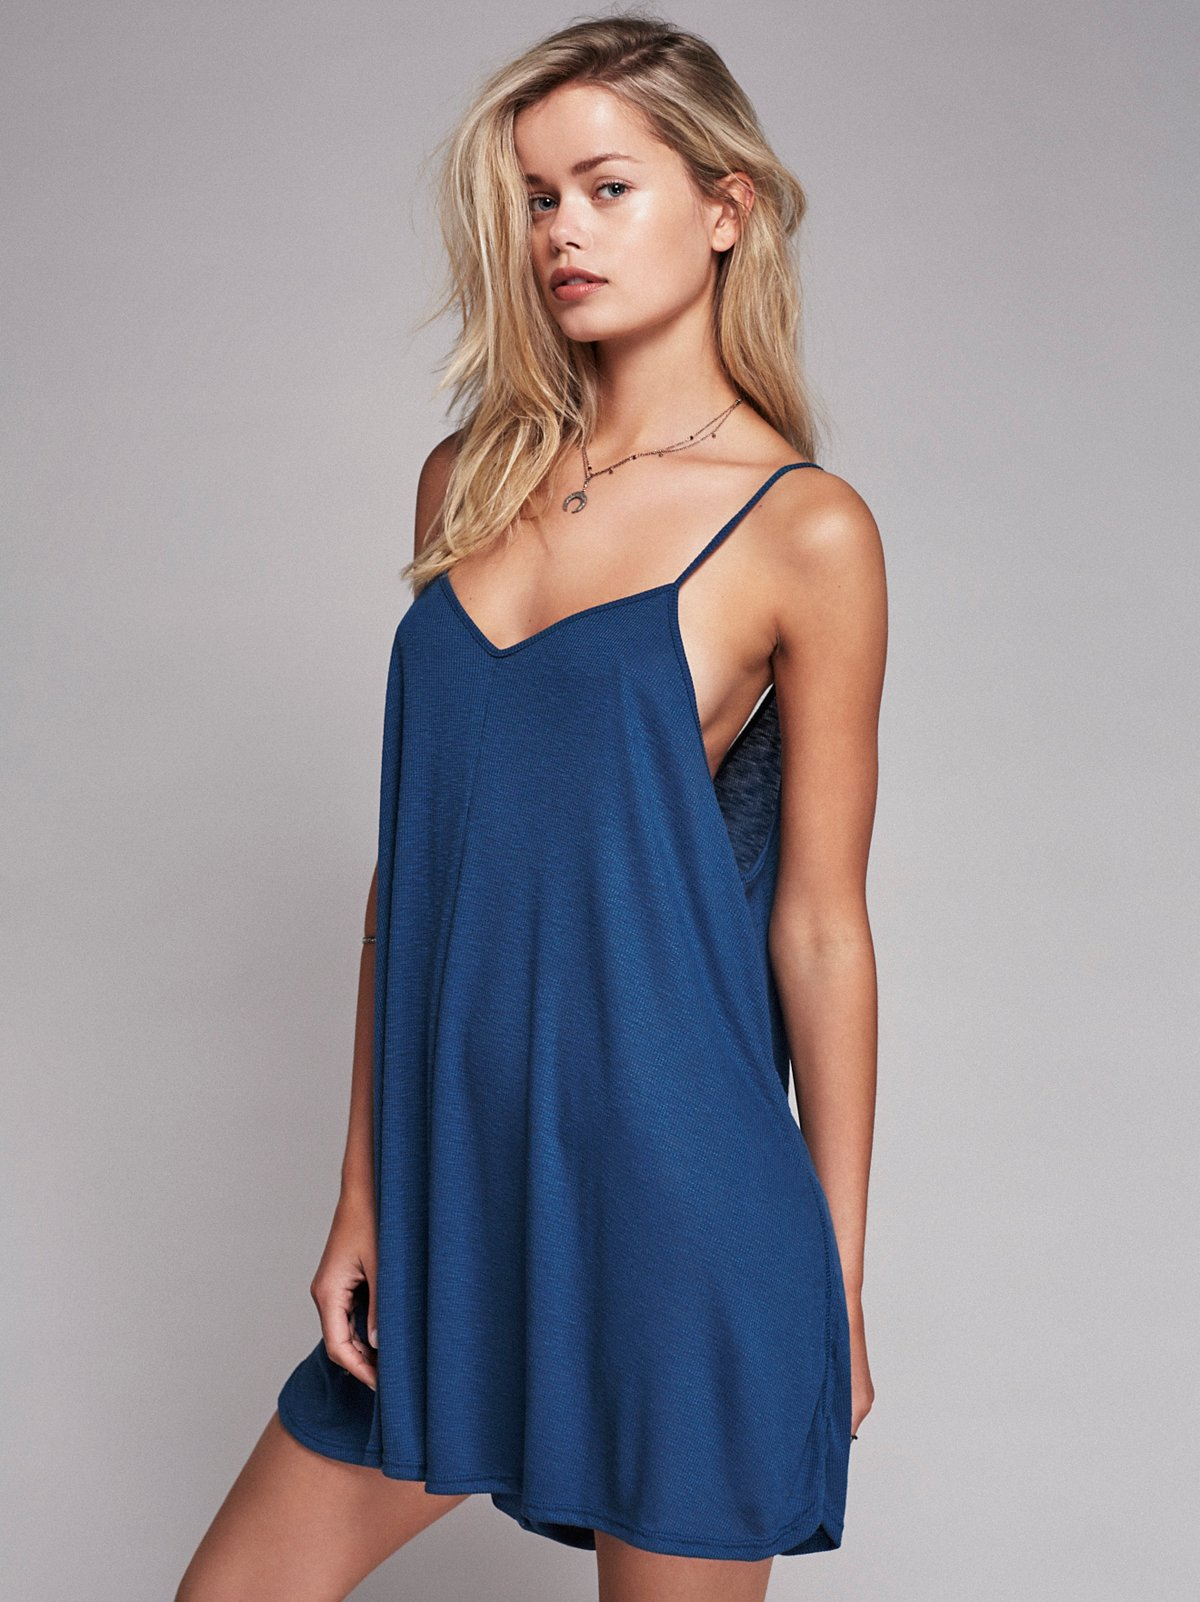 Take Heart Playsuit